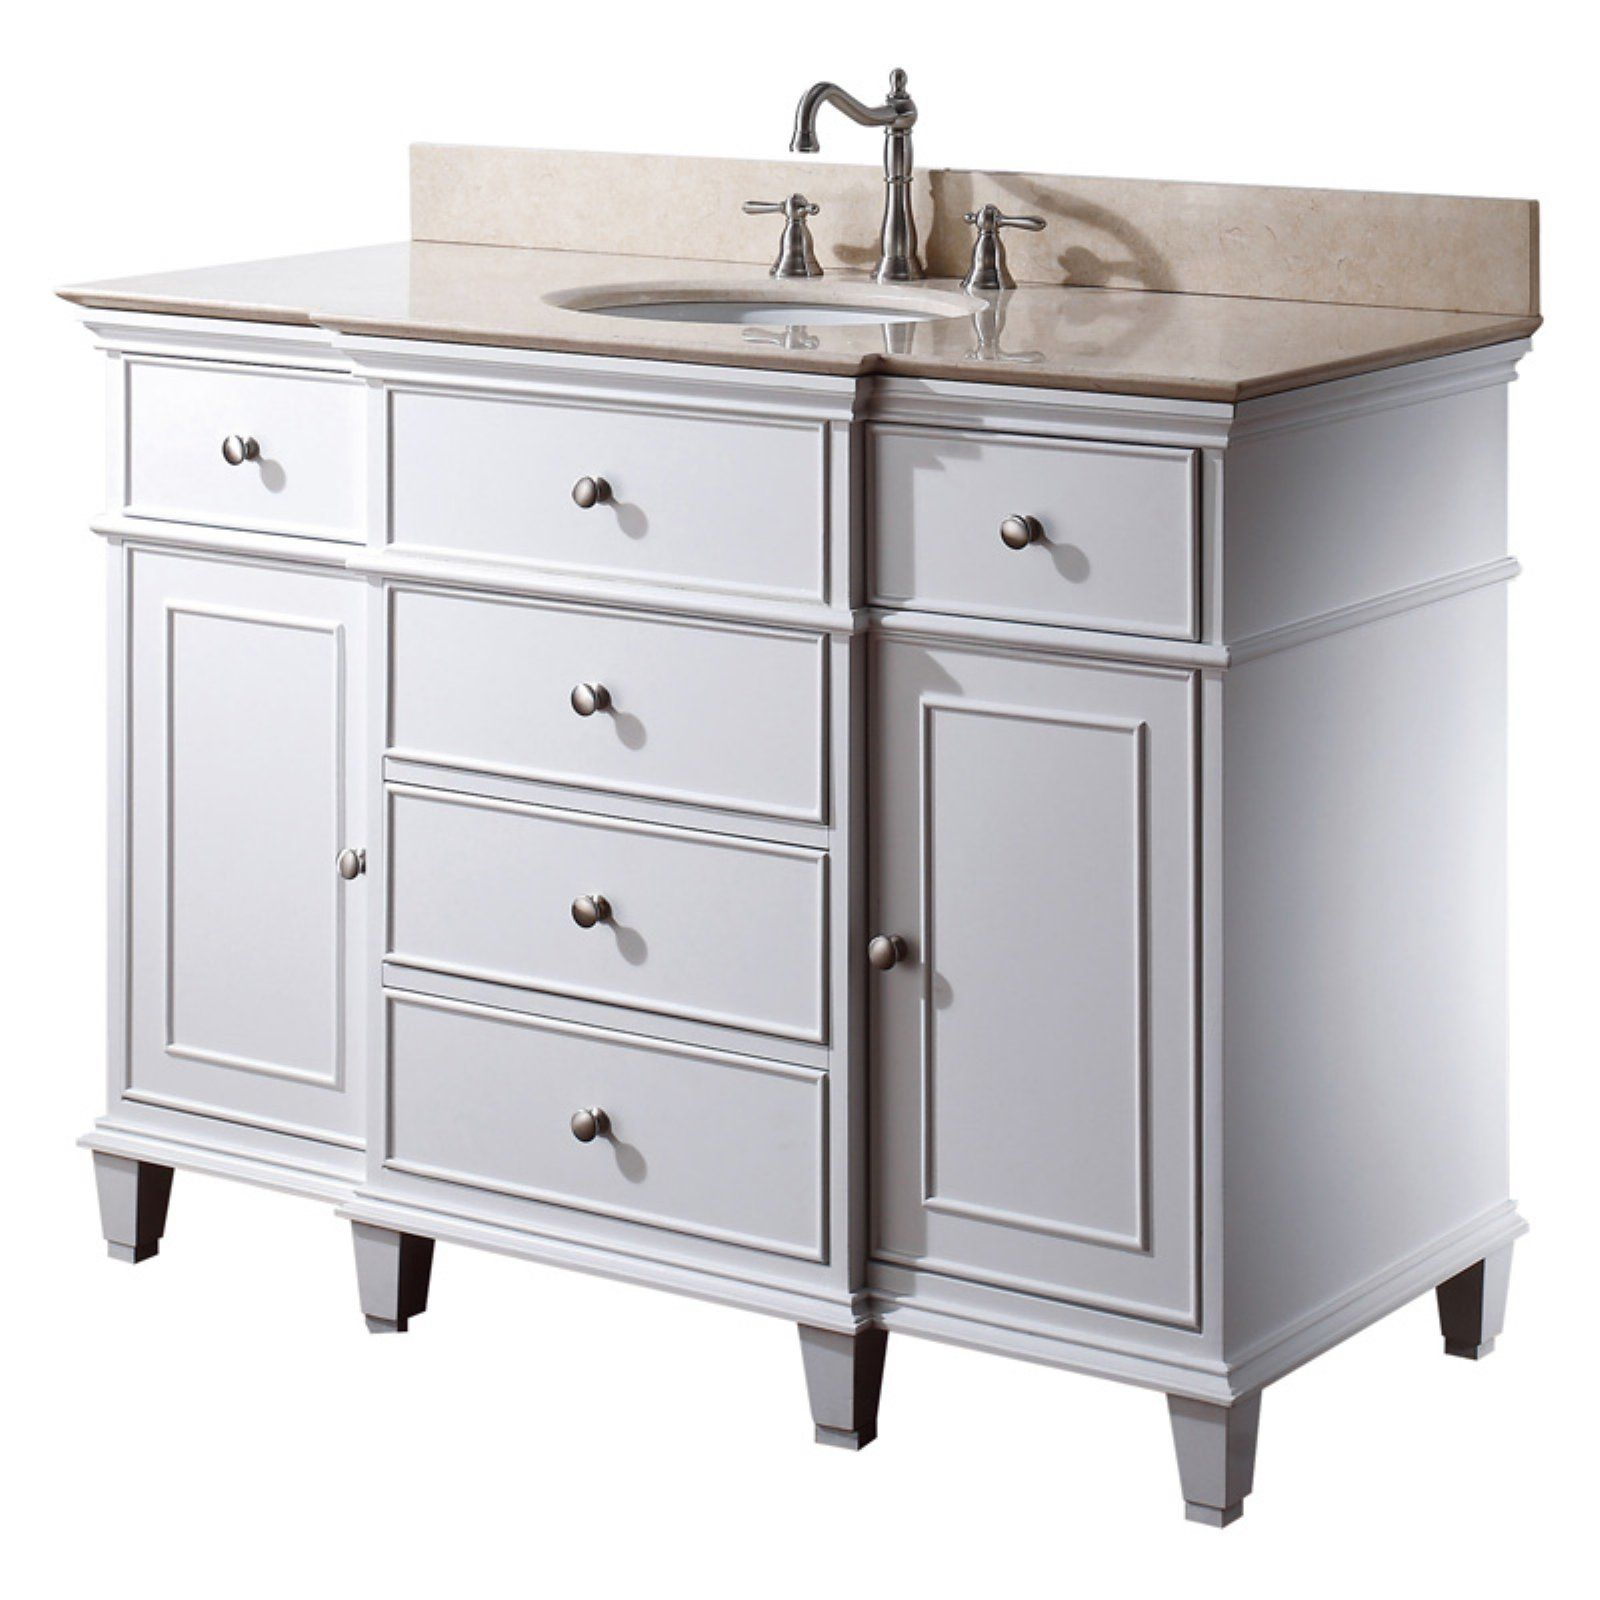 Avanity Windsor V48 Wt Windsor 48 In Single Bathroom Vanity